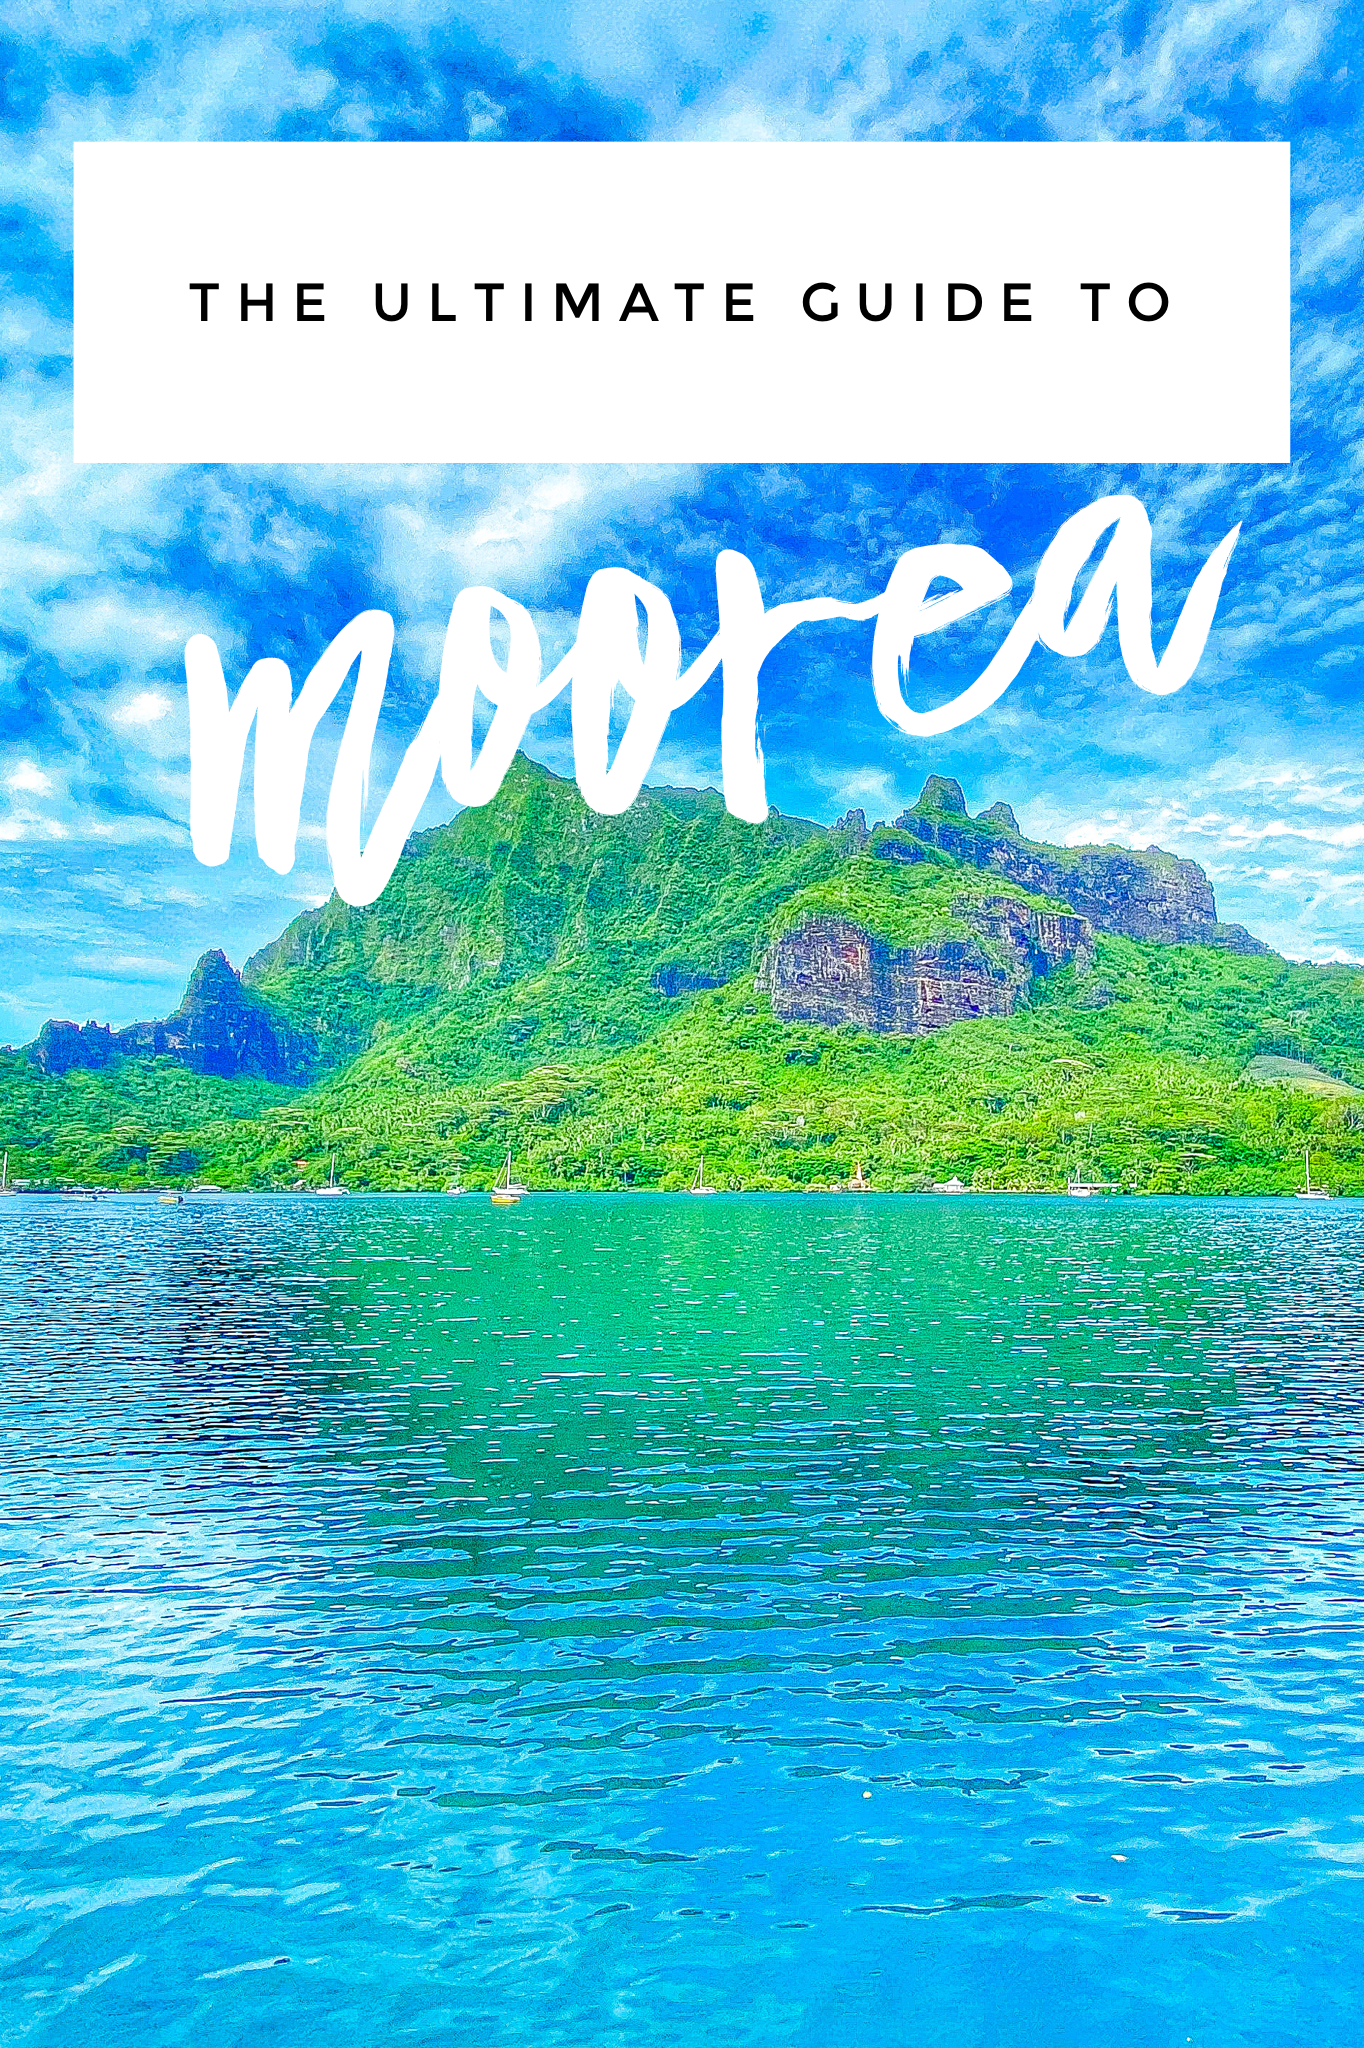 the ultimate guide to Moorea